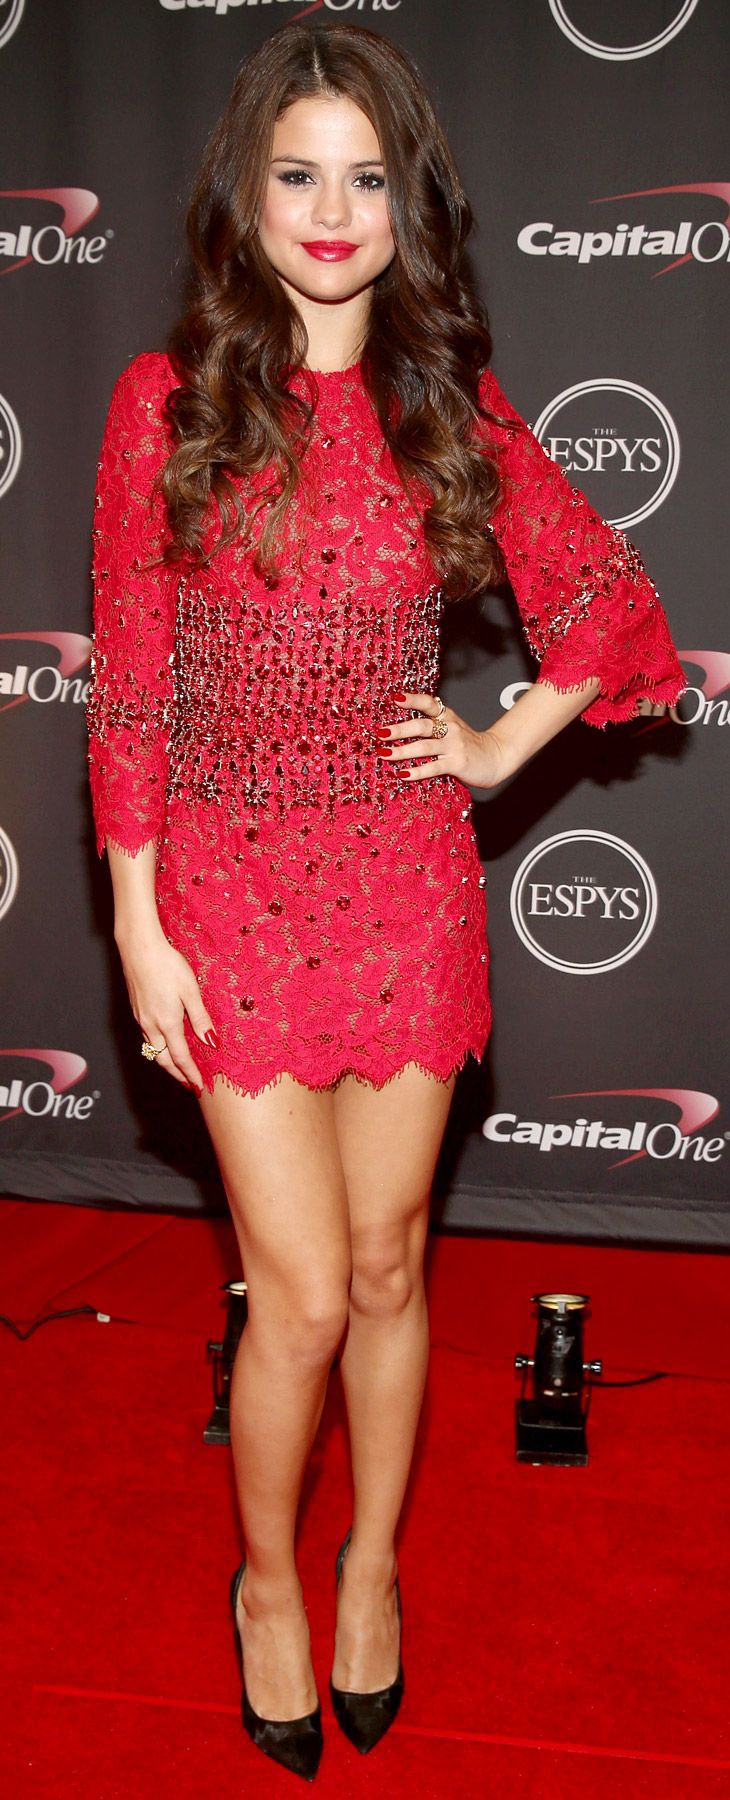 Espy awards 2013 selena gomez